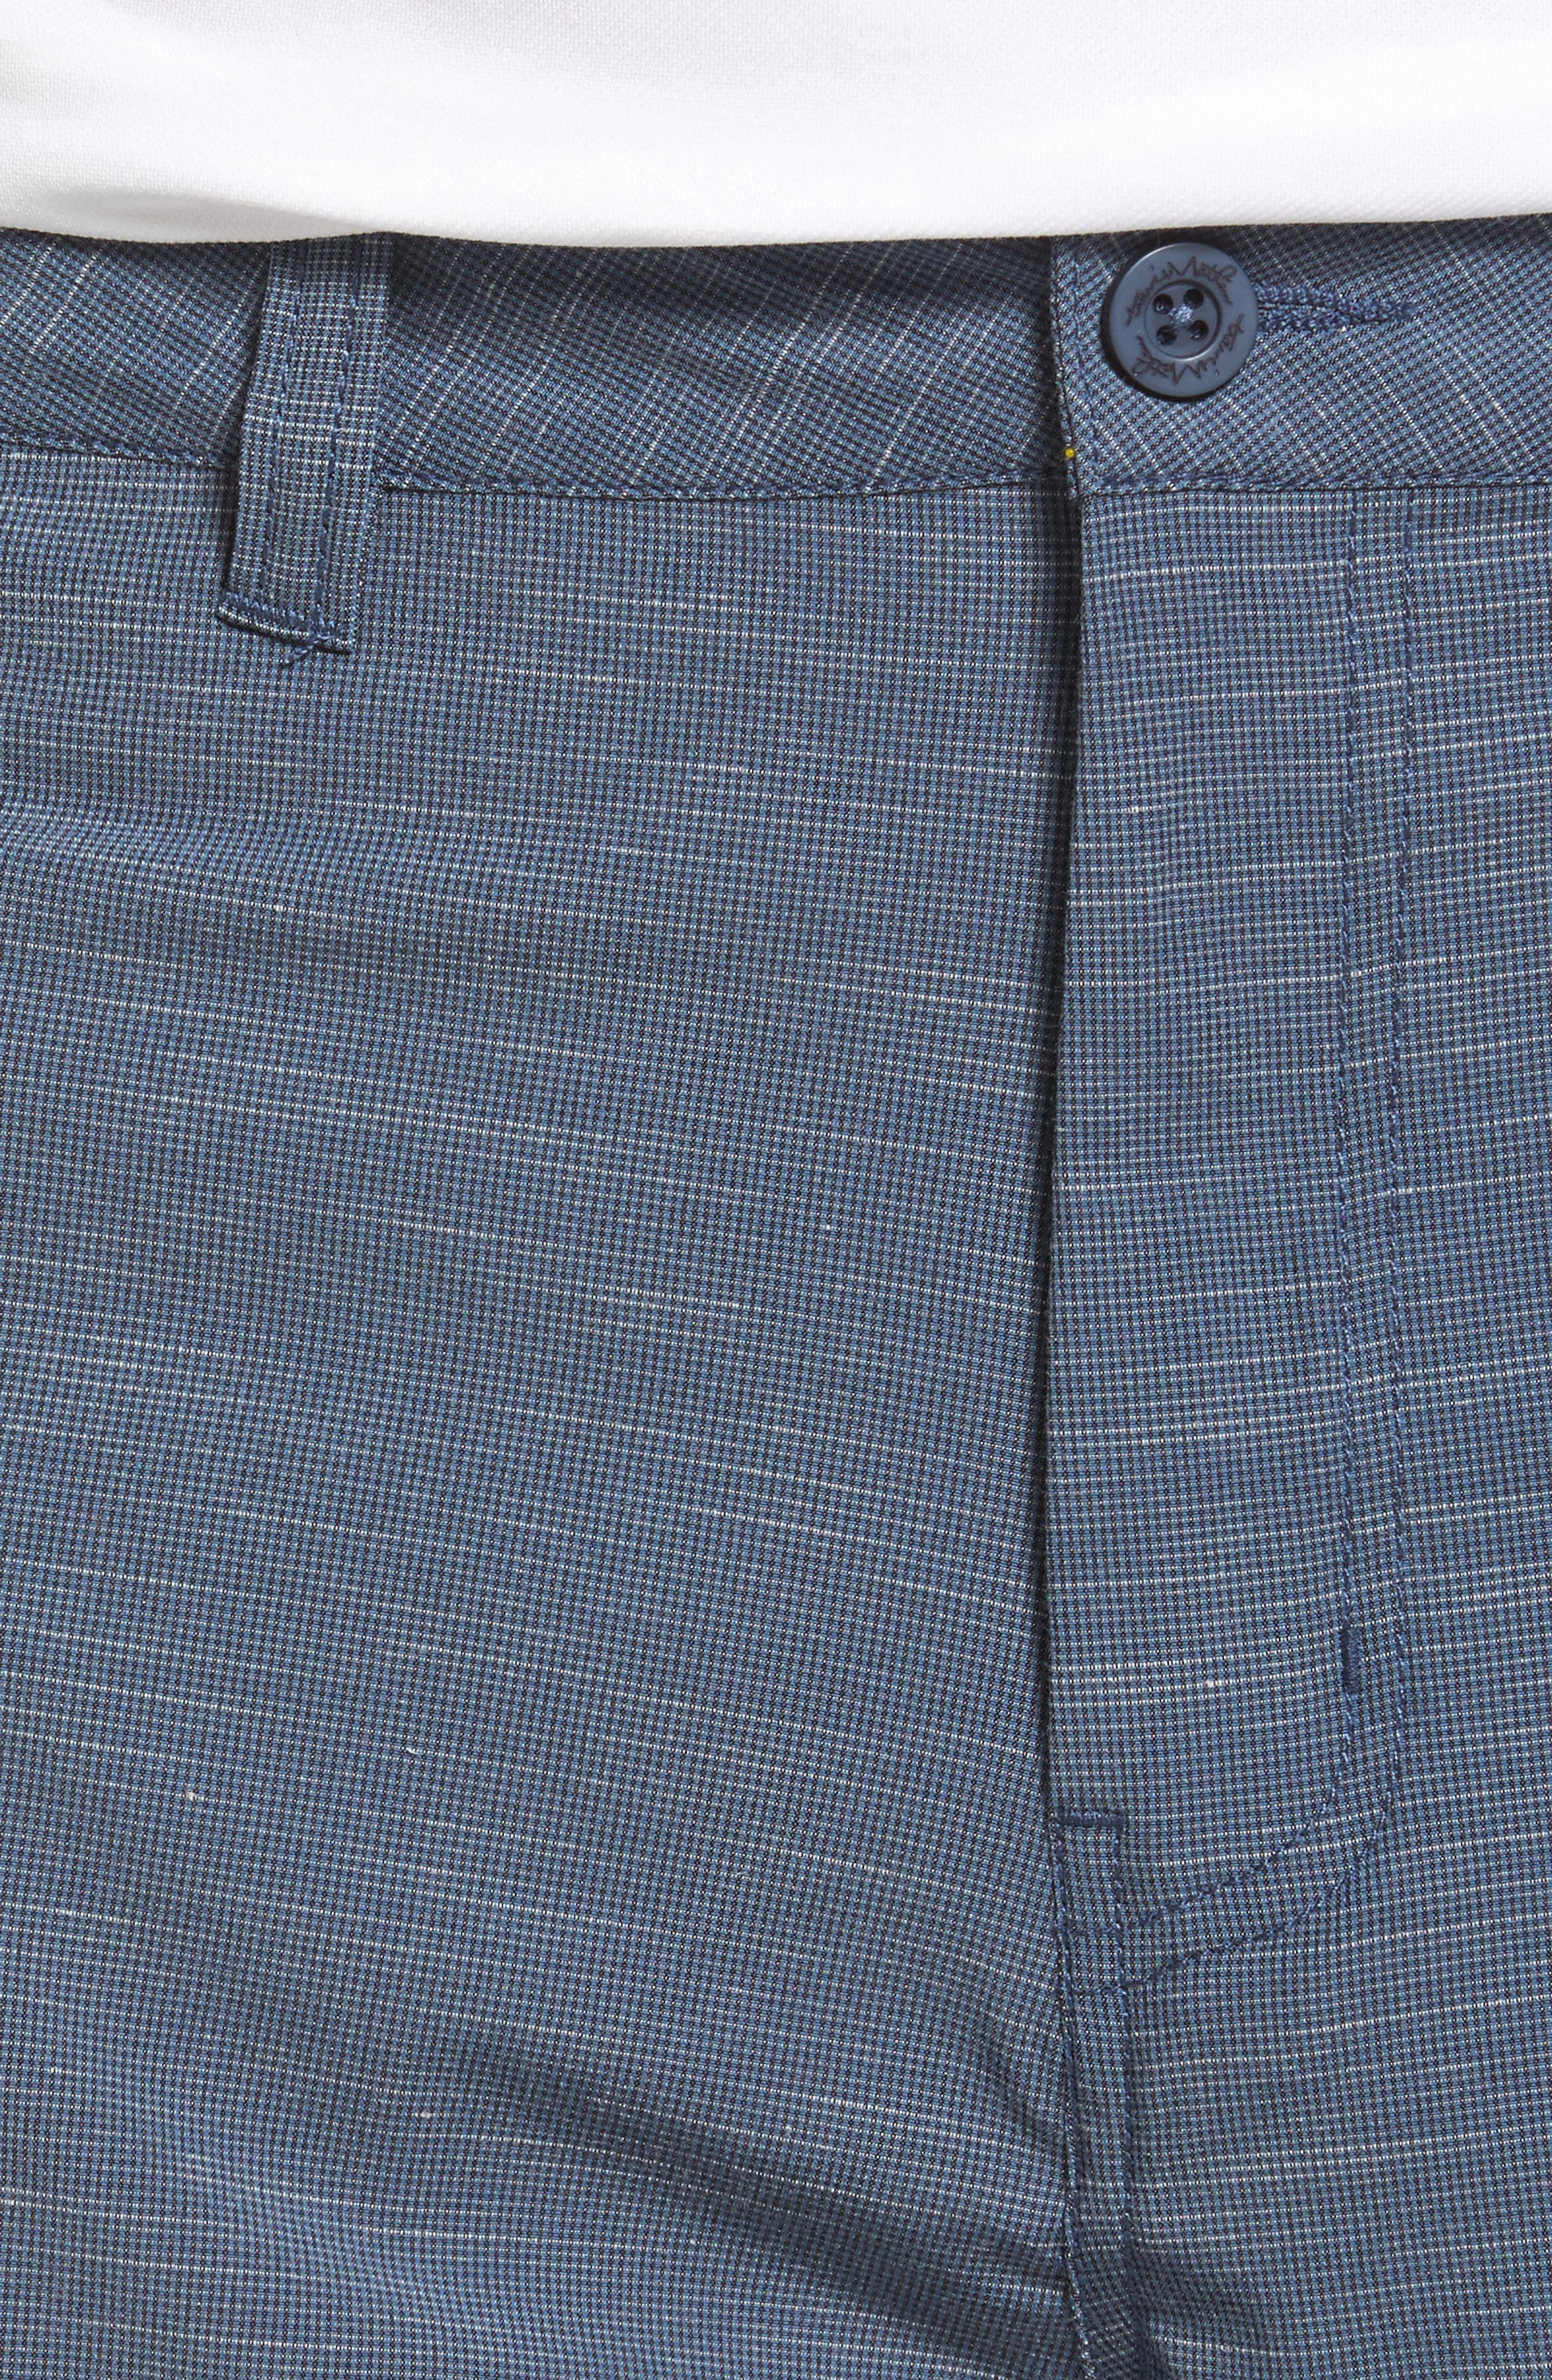 Fisher Shorts,                             Alternate thumbnail 4, color,                             Heather Blue Nights